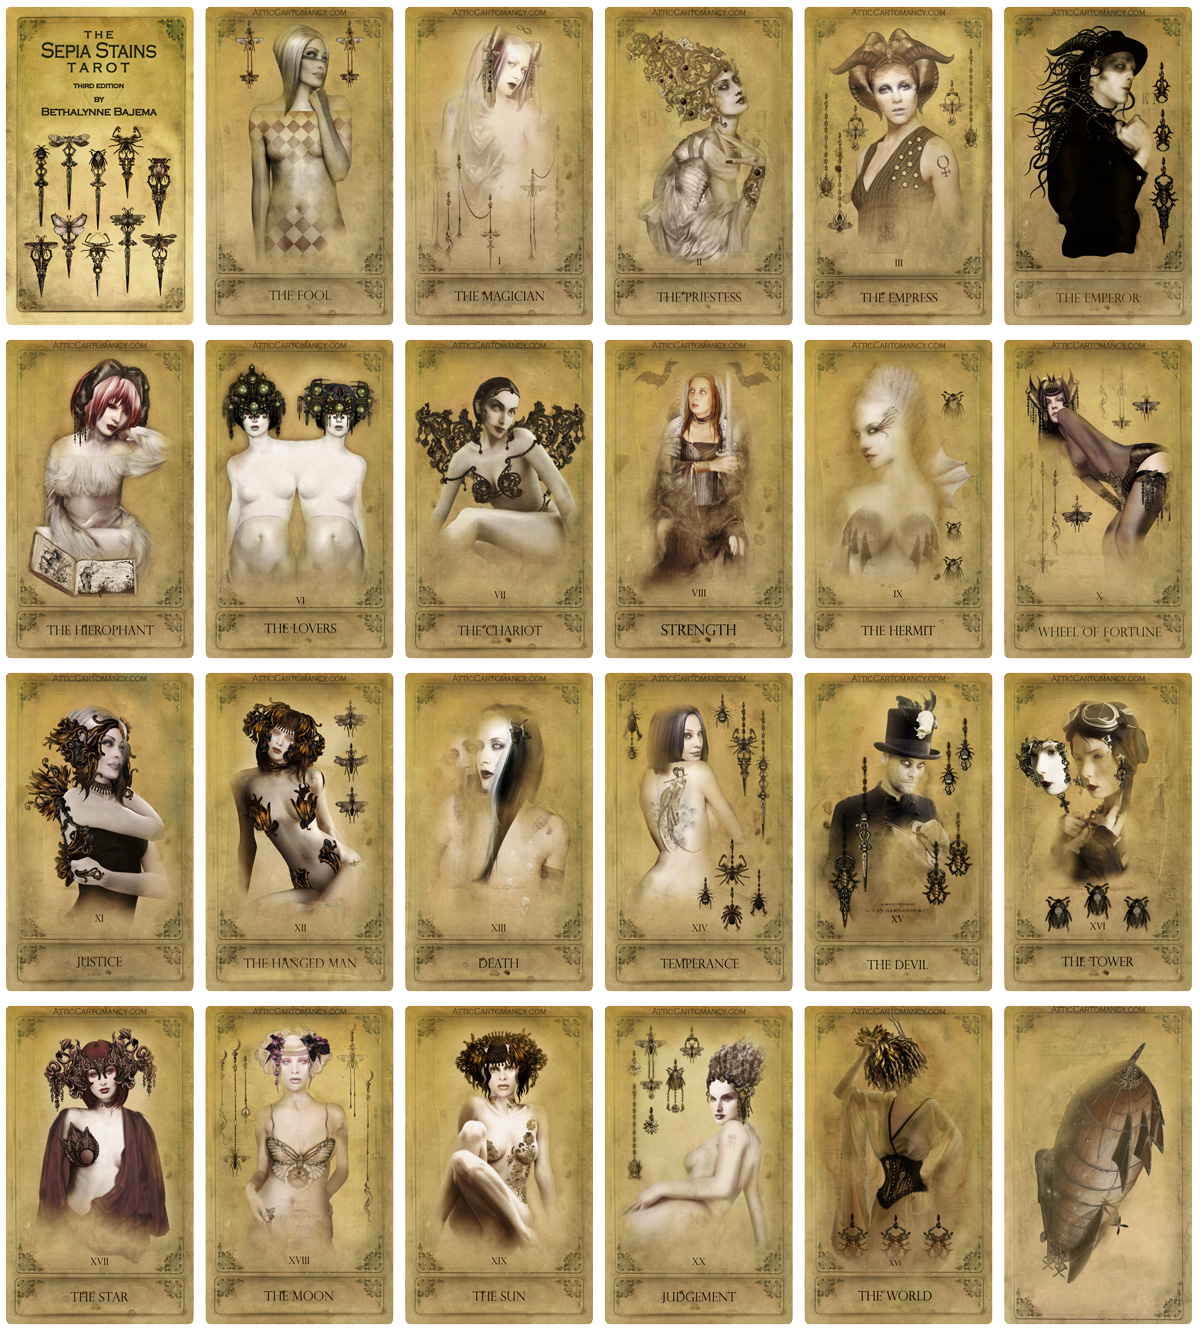 Attic Cartomancy - Sepia Stains Tarot